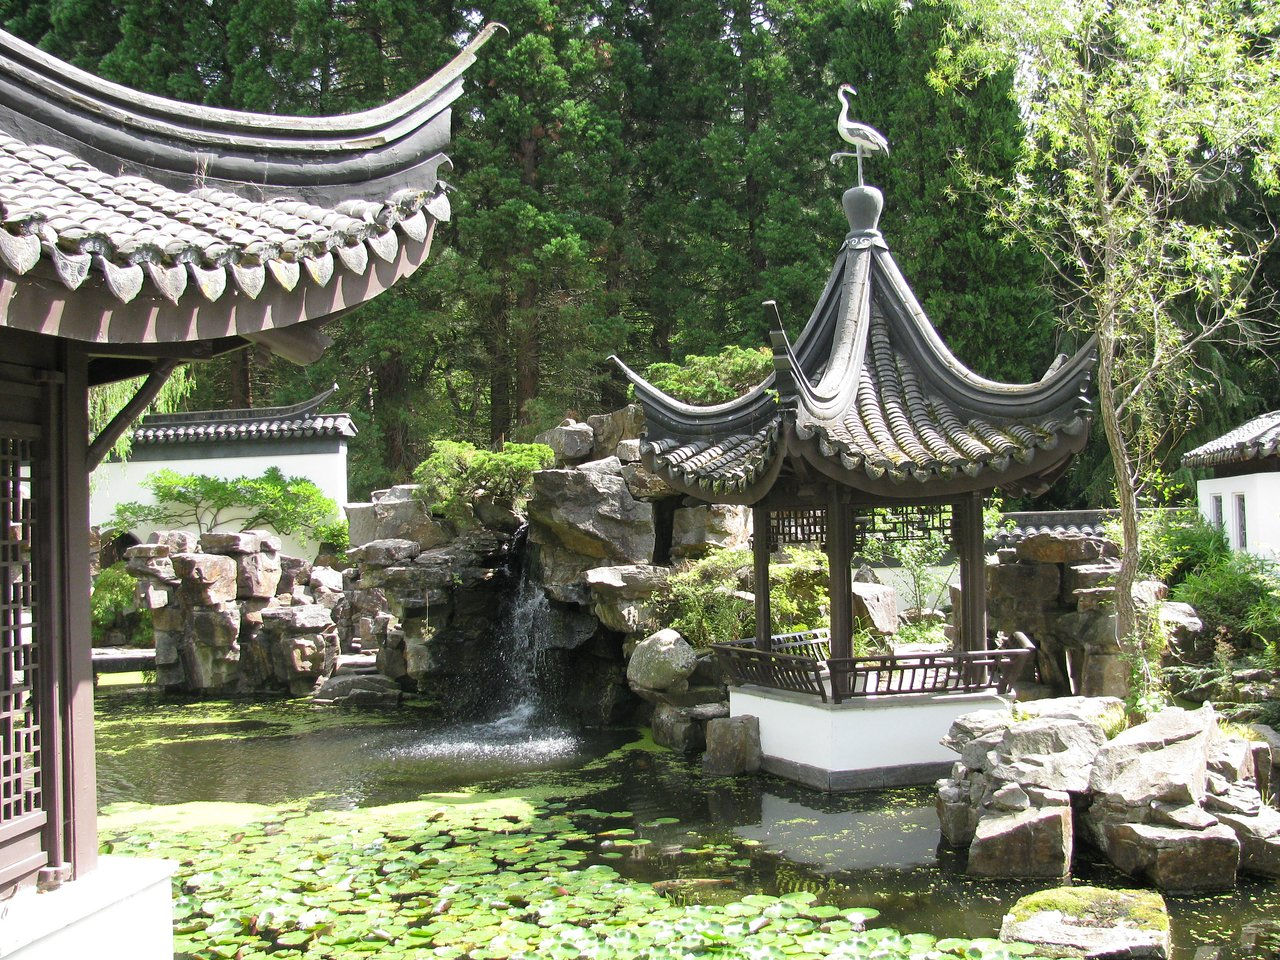 China Garten Neu Botanischer Garten Bochum 2020 All You Need to Know